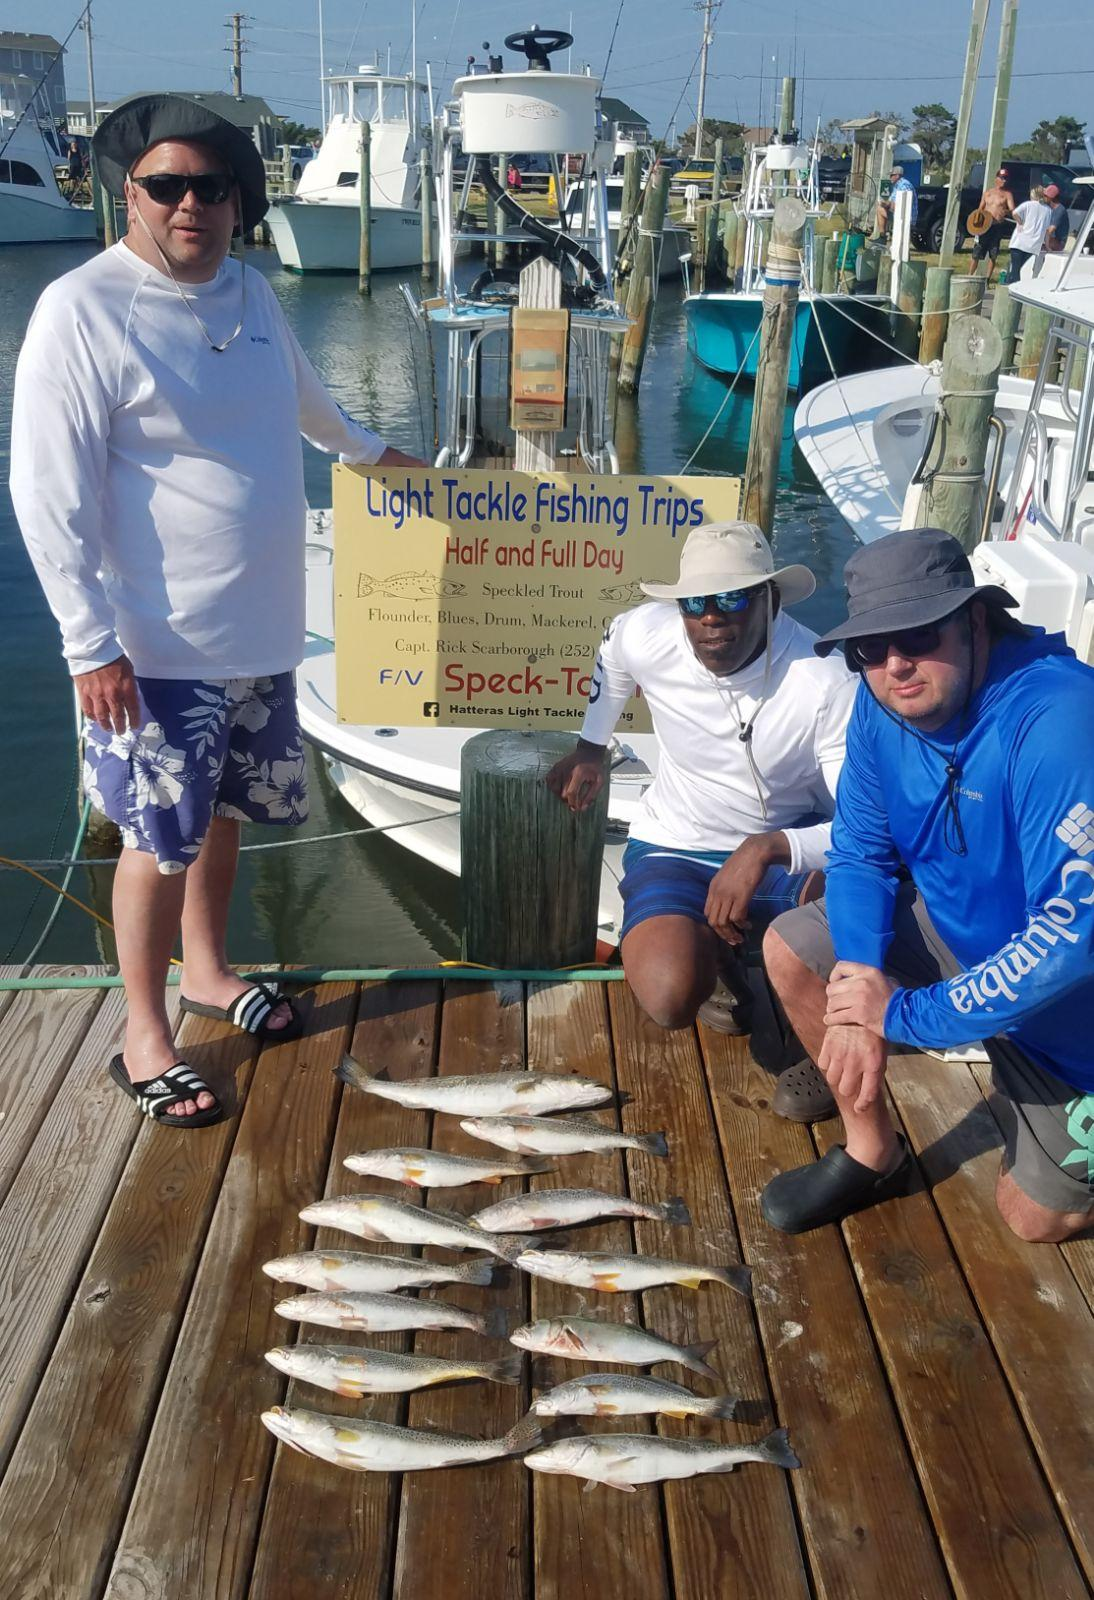 Speck-Tackler Teach's Lair Fishing Charter